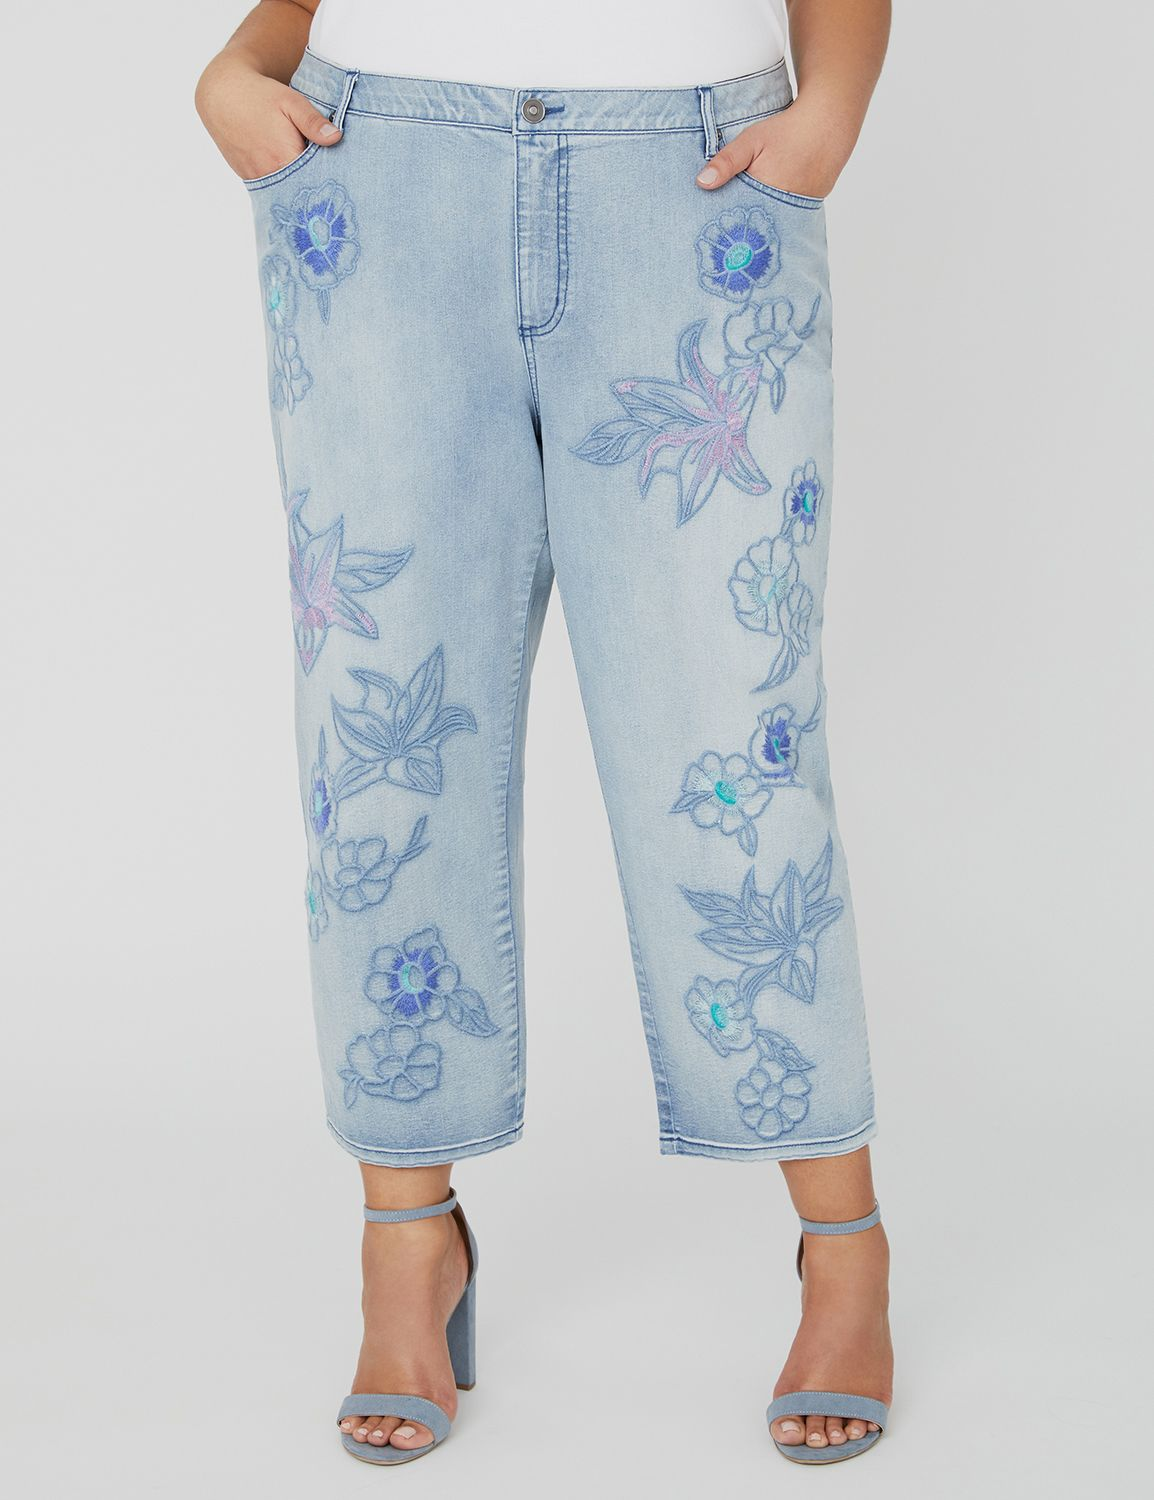 Floral Stitch Capri 1088259 EMBROIDERED CAPRI - 21